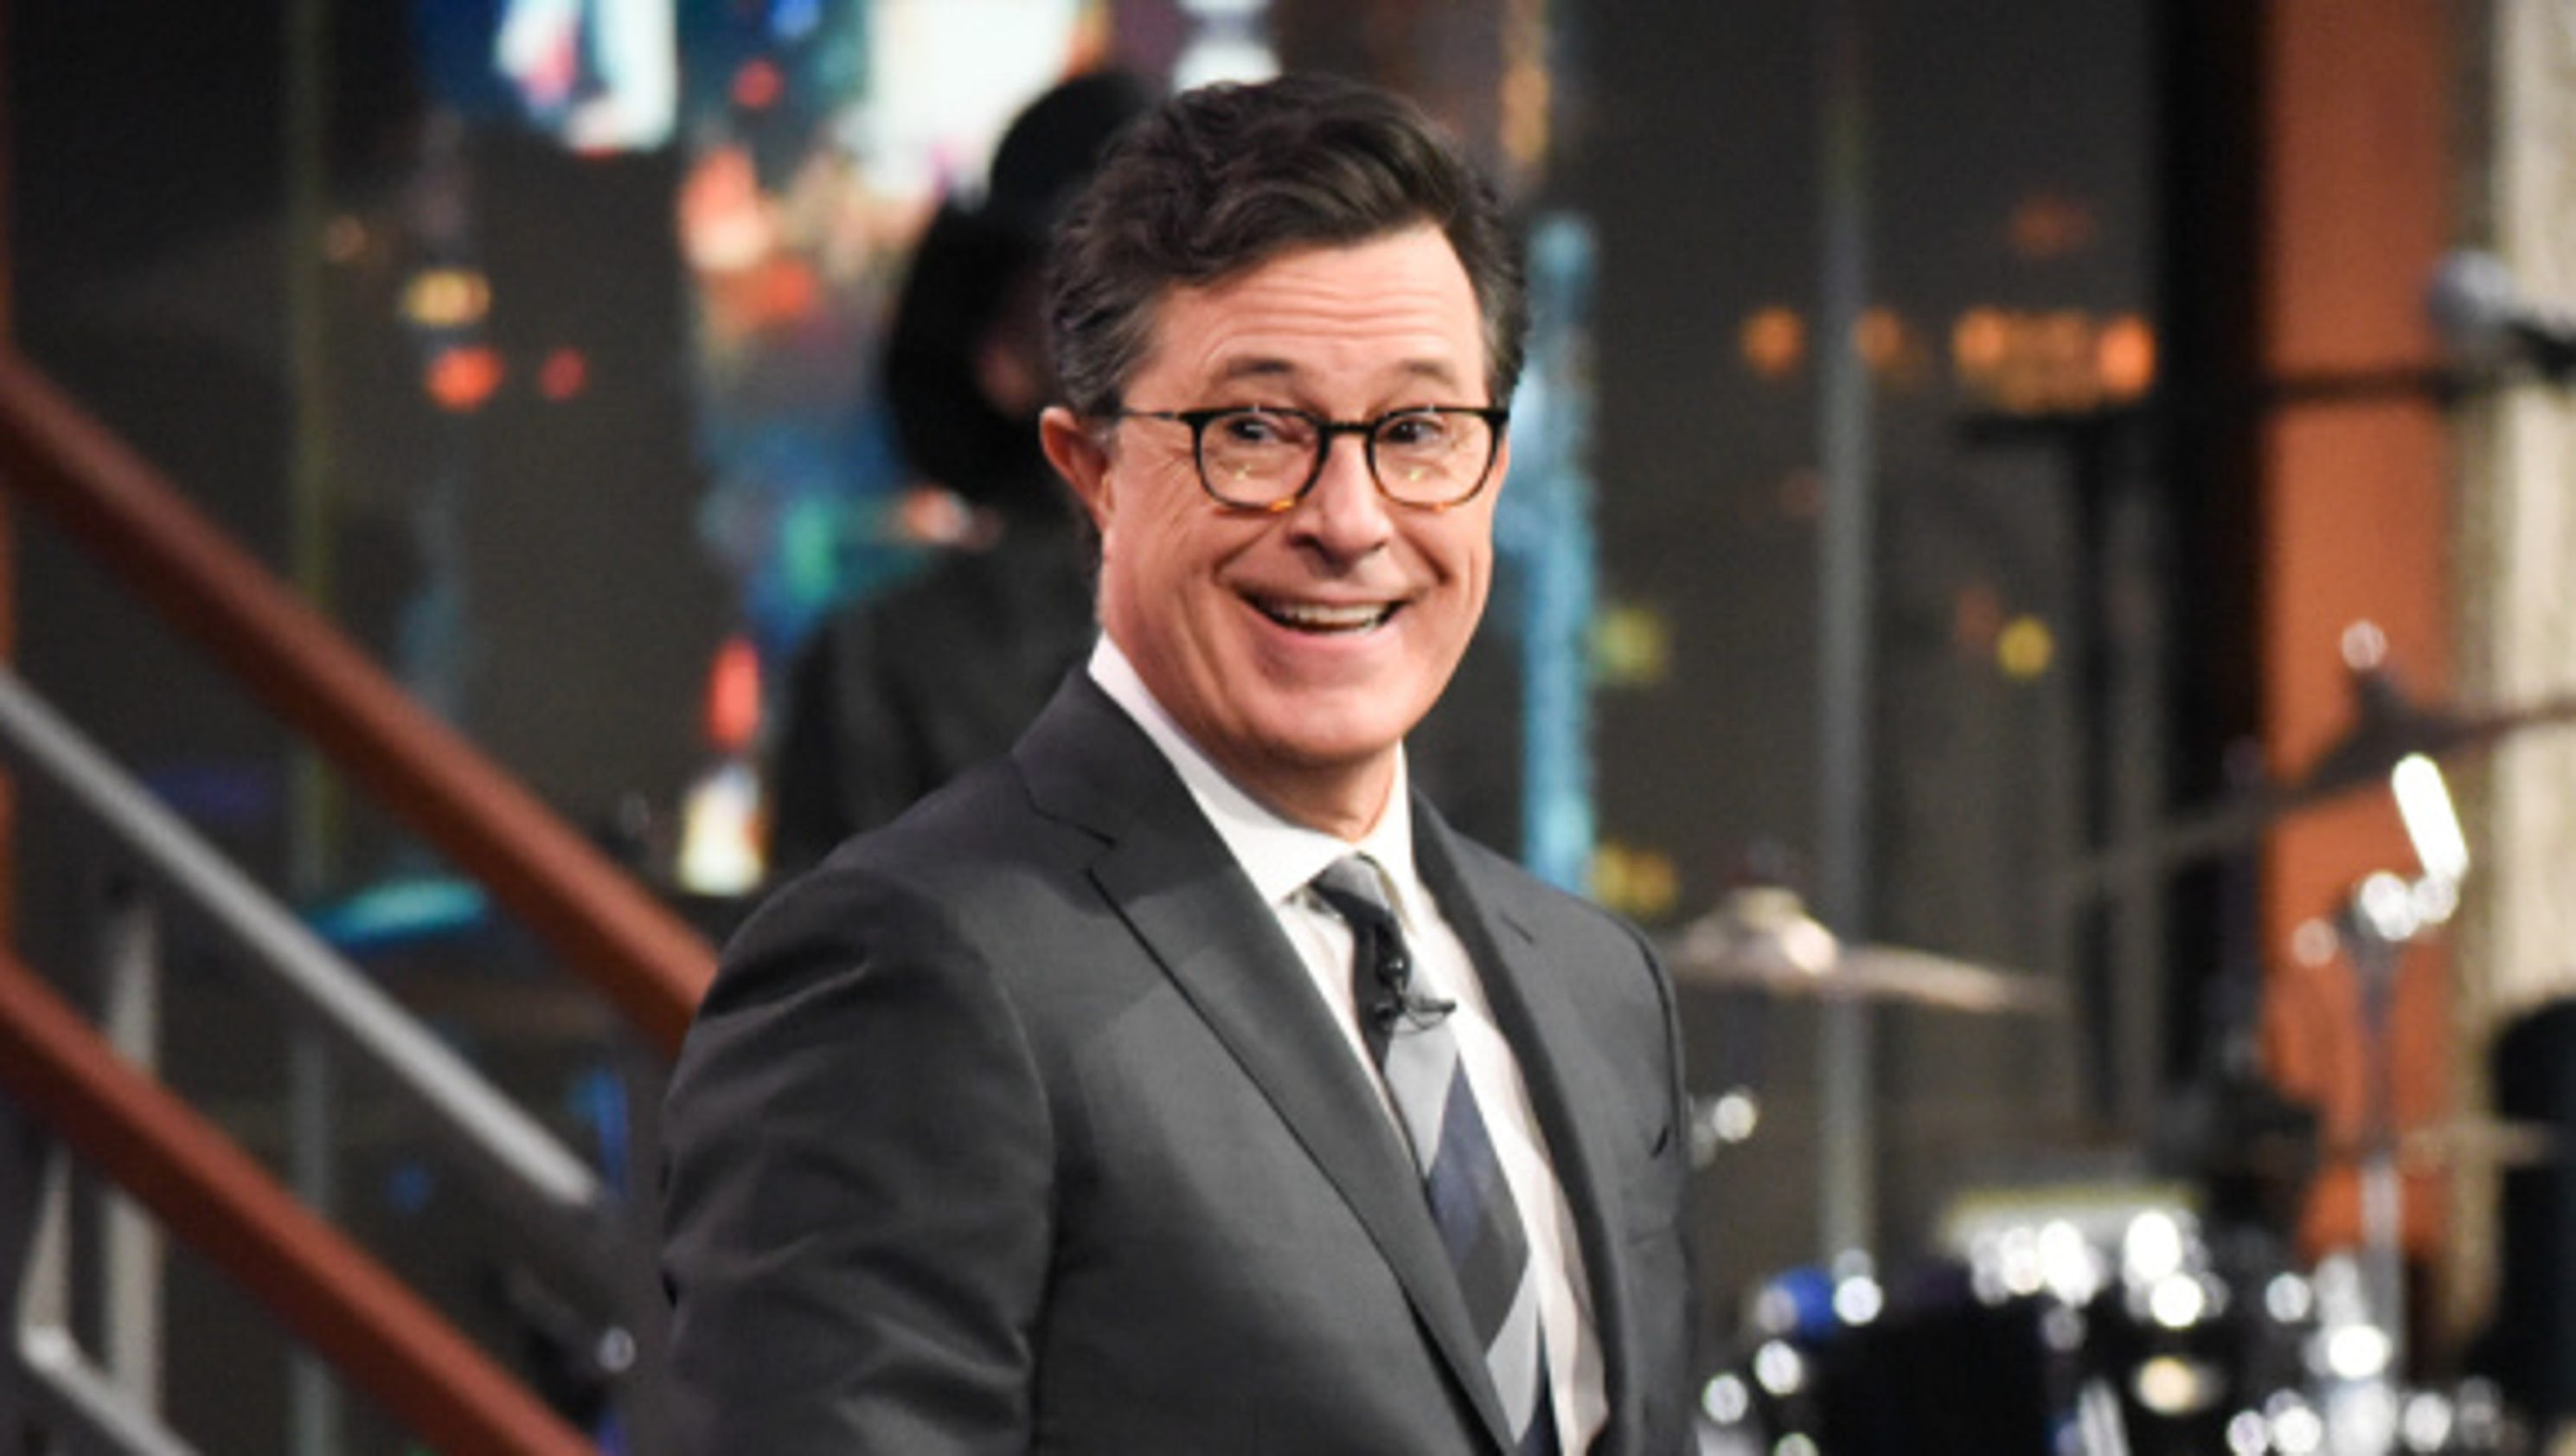 'Late Show': The one thing Stephen Colbert, Donald Trump ...